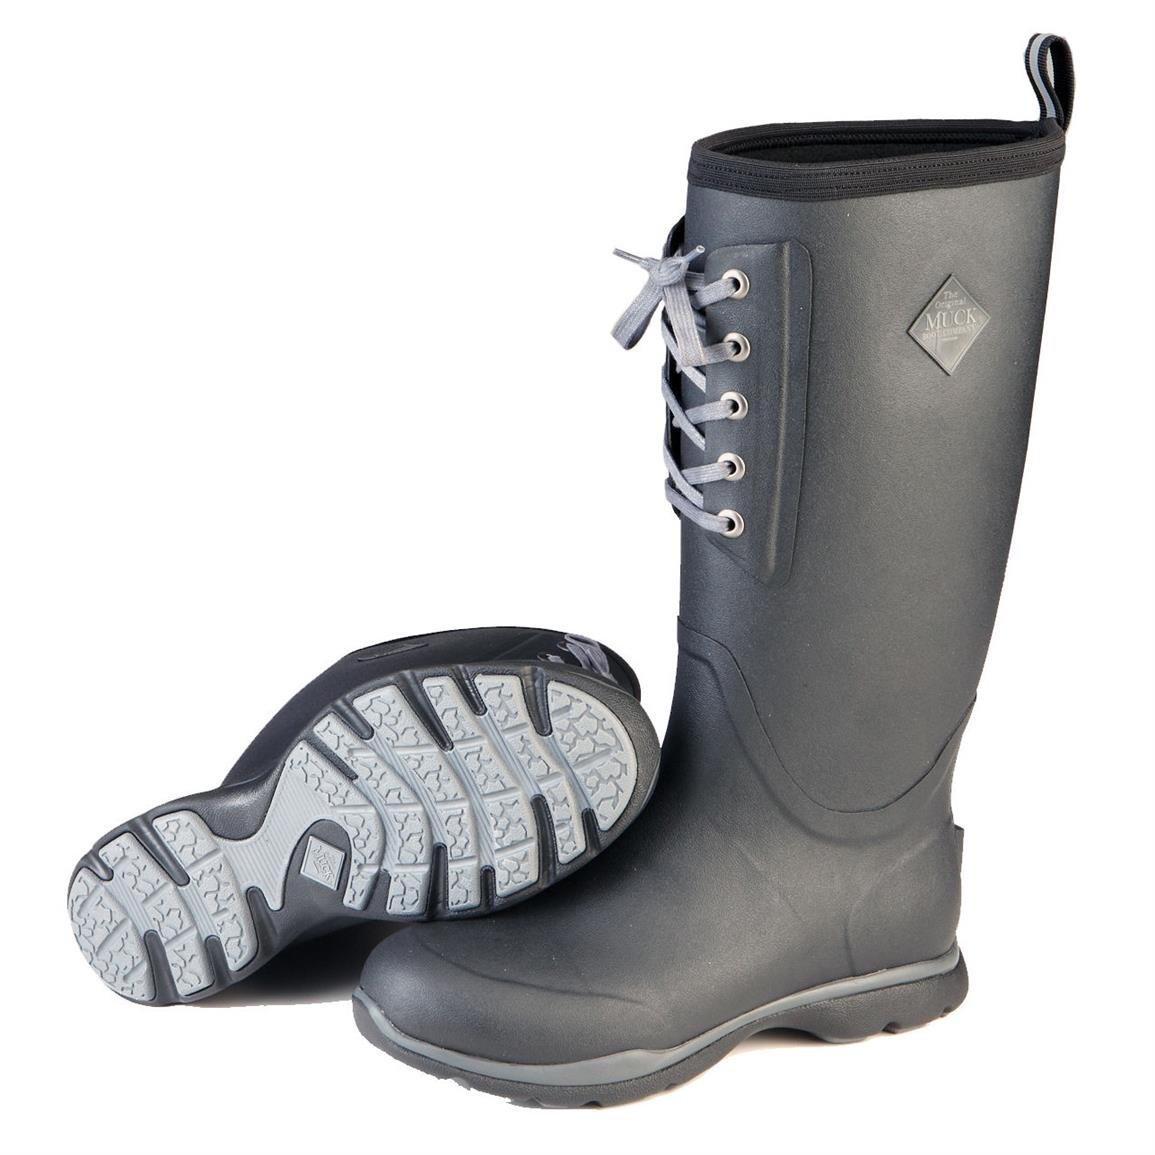 Muck Arctic Excursion Lace Tall Waterproof Insulated Rubber Boots, Black